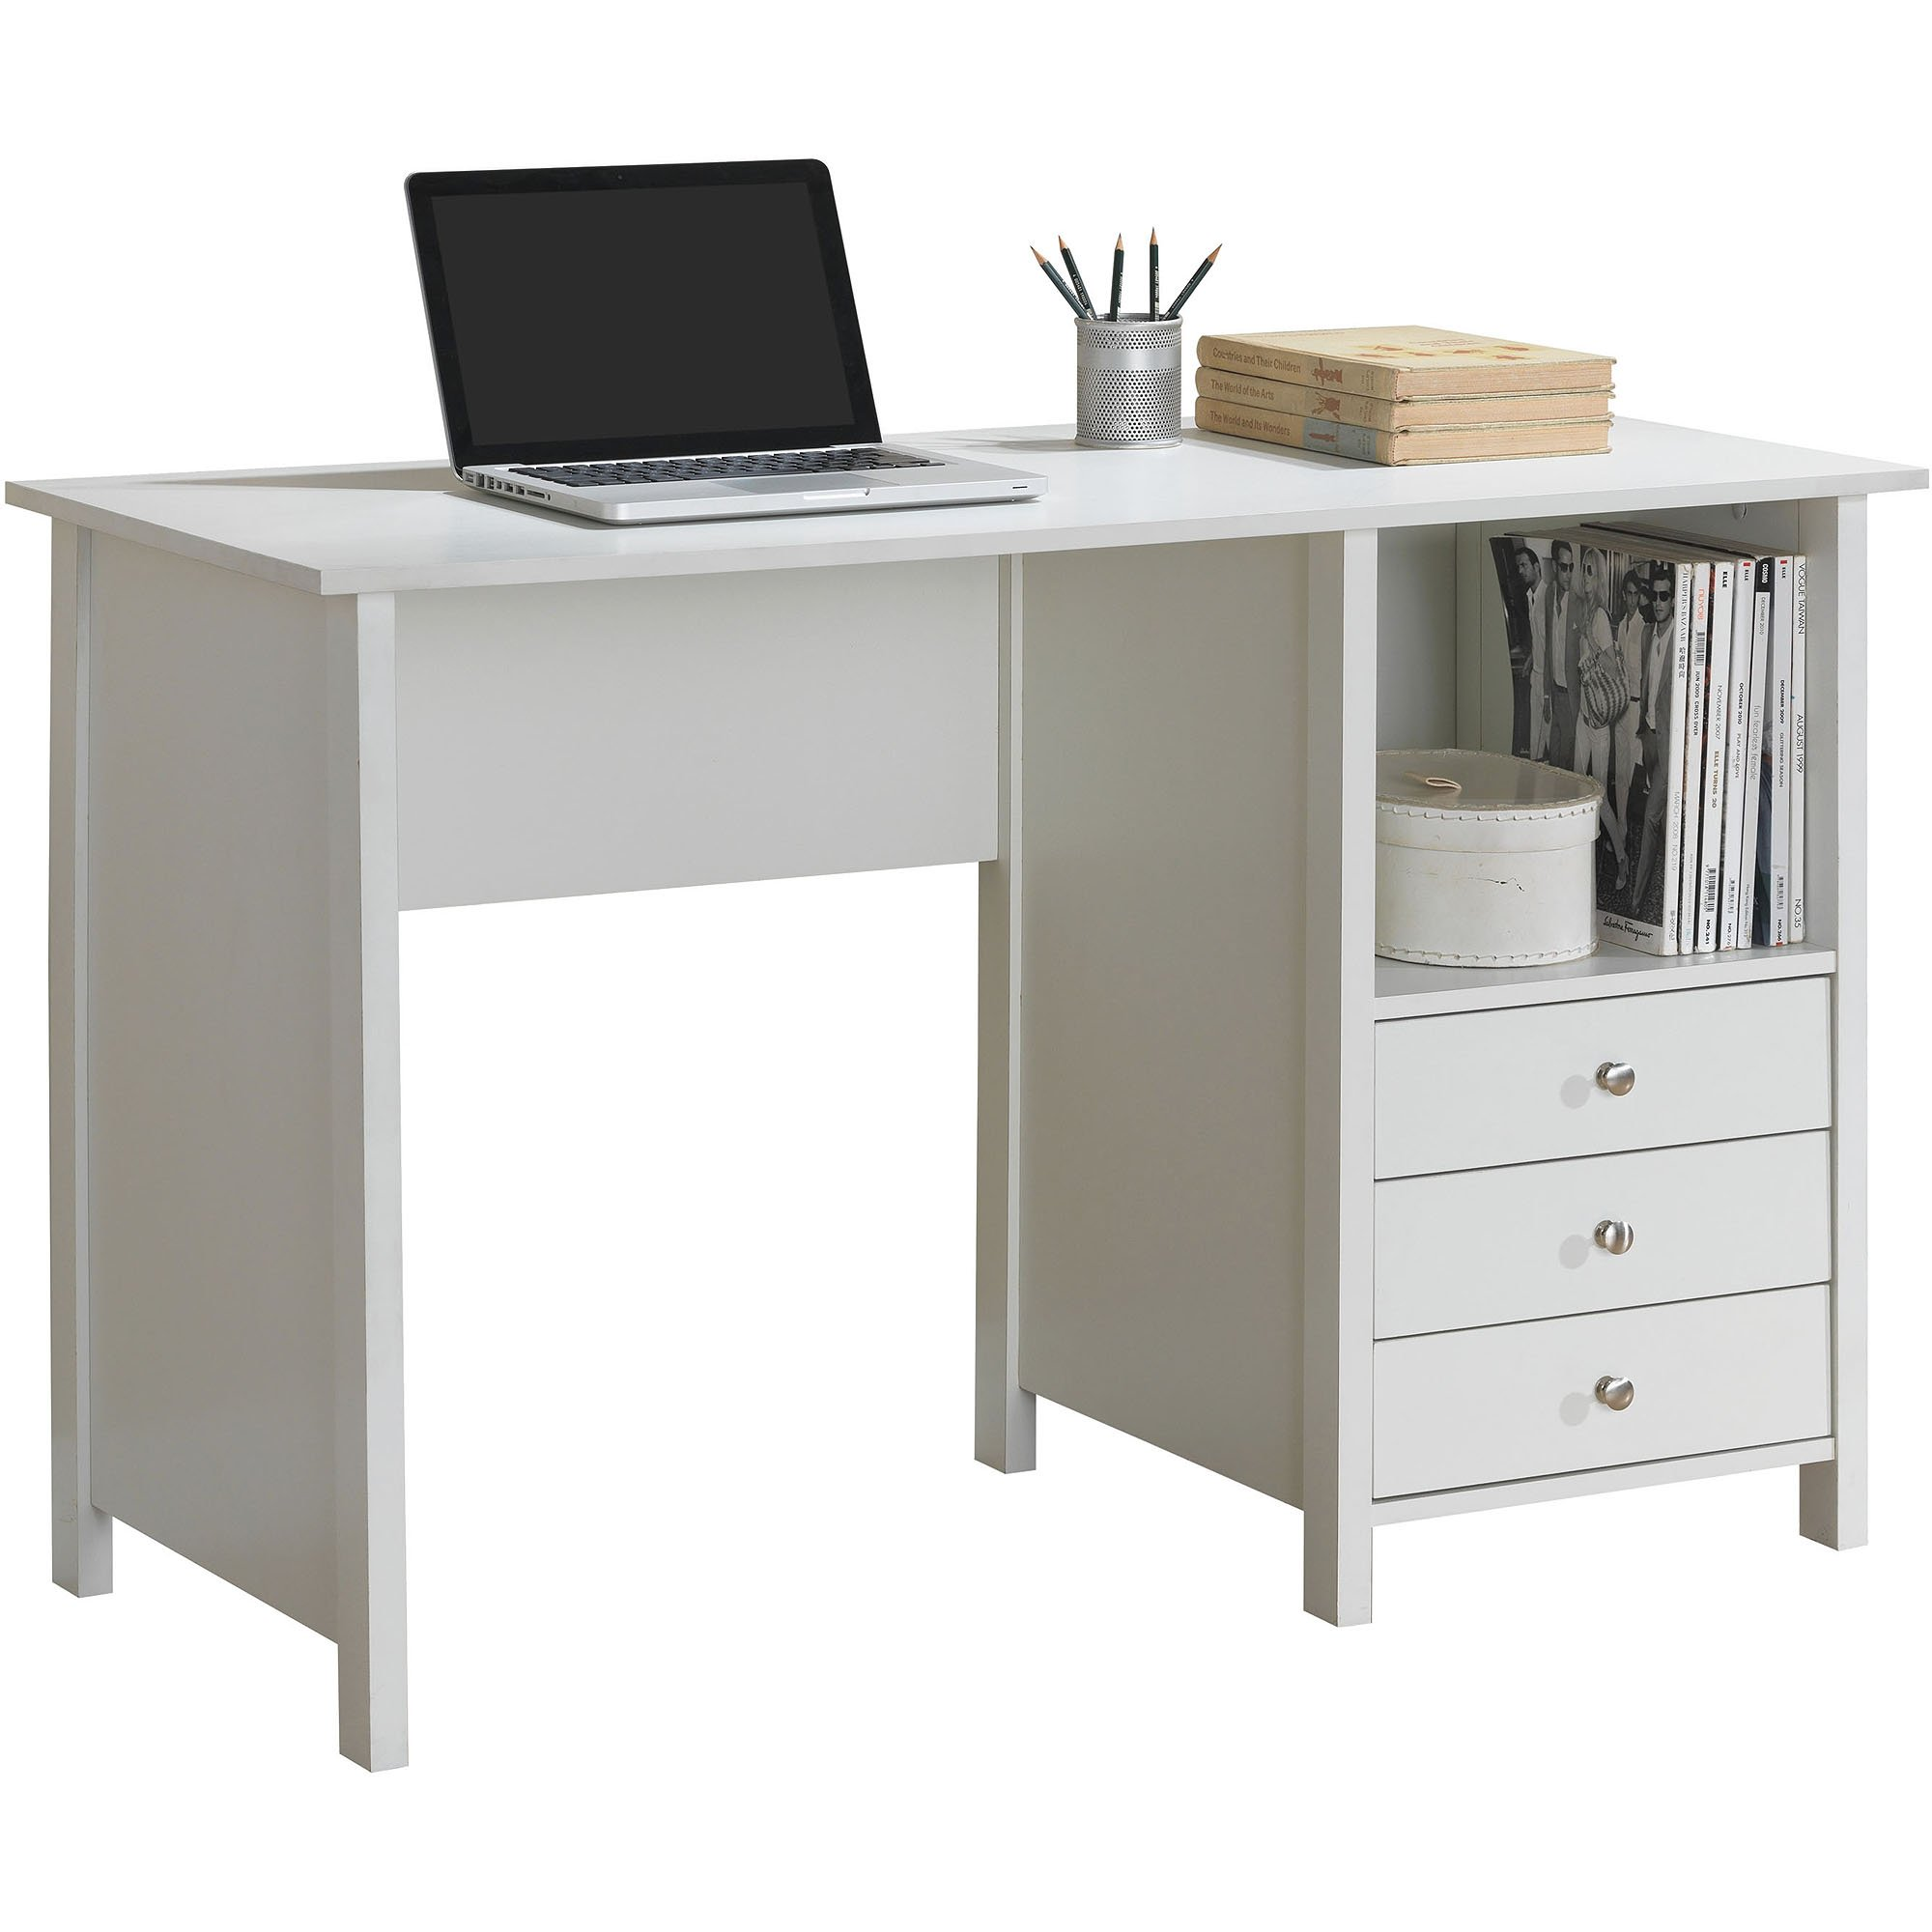 Home Office Modern Desk Large Surface Furniture Documents Holder Storage Spacious Drawers Square Shelves Decoration Accessories Paper Laminate Easy Assembly Organizing Unit